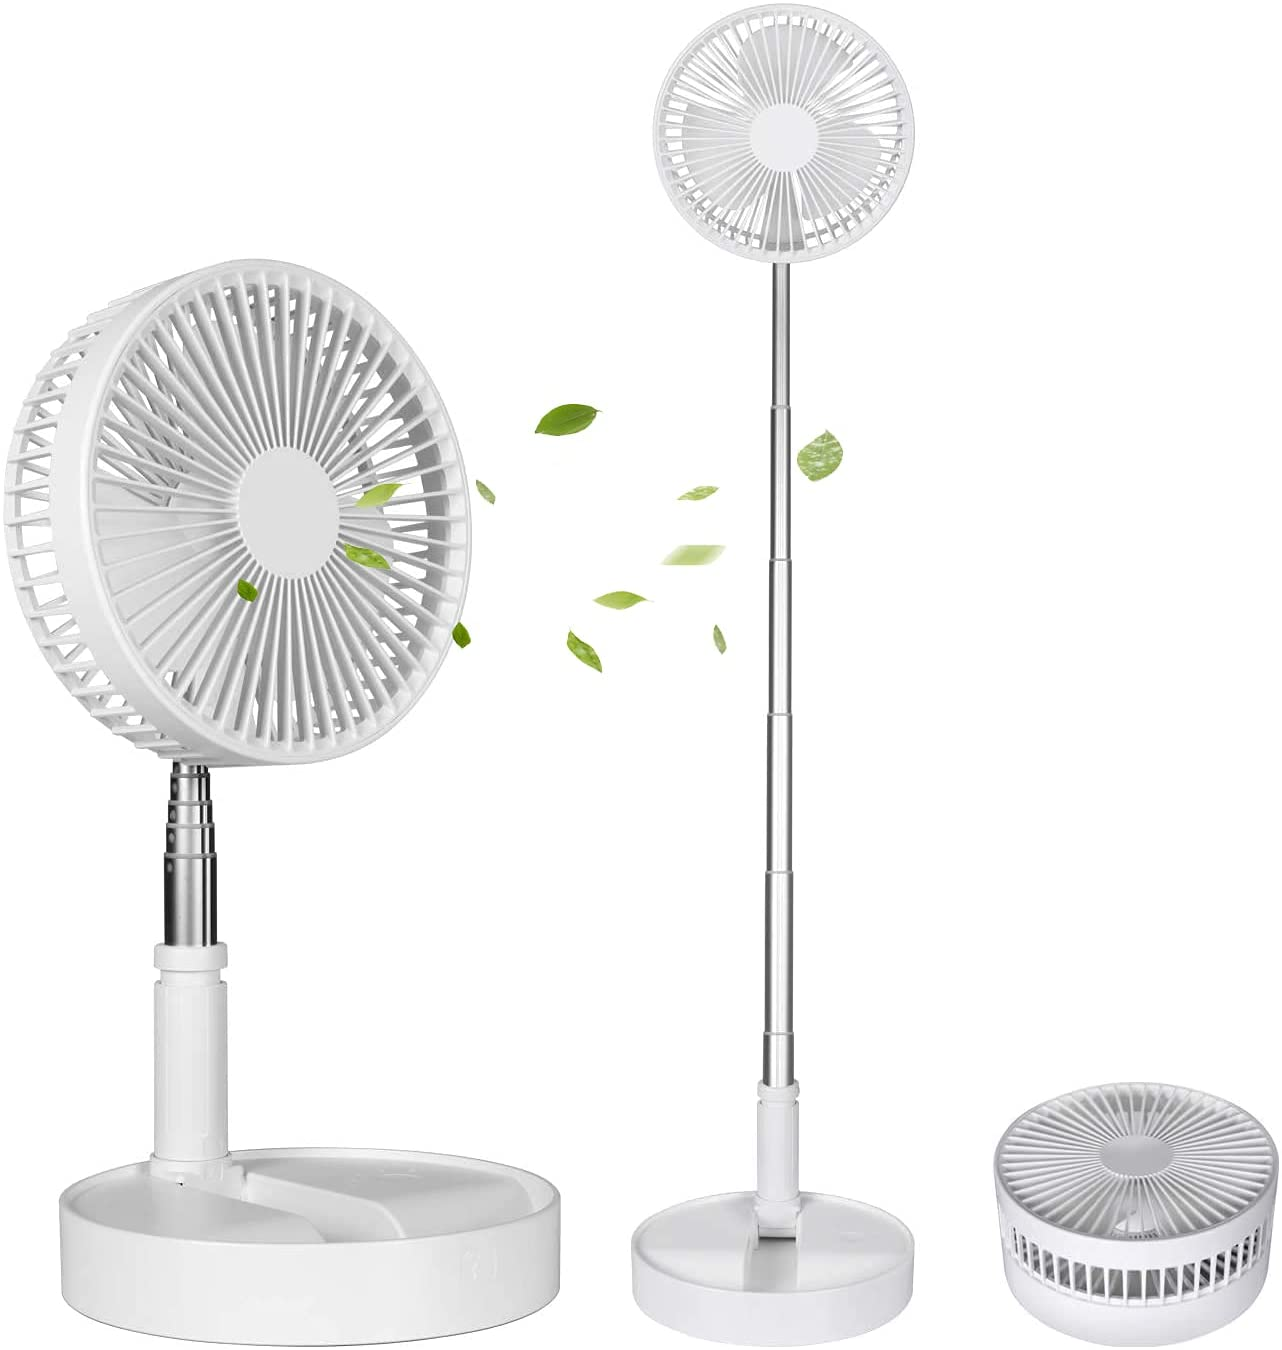 Portable Desk and Table Fan, Foldable Standing Fan, Telescopic Pedestal Fans for Personal Bedroom Office Fishing Camping , Ultra-quiet, 4 Speed Settings, 7200mAh Battery